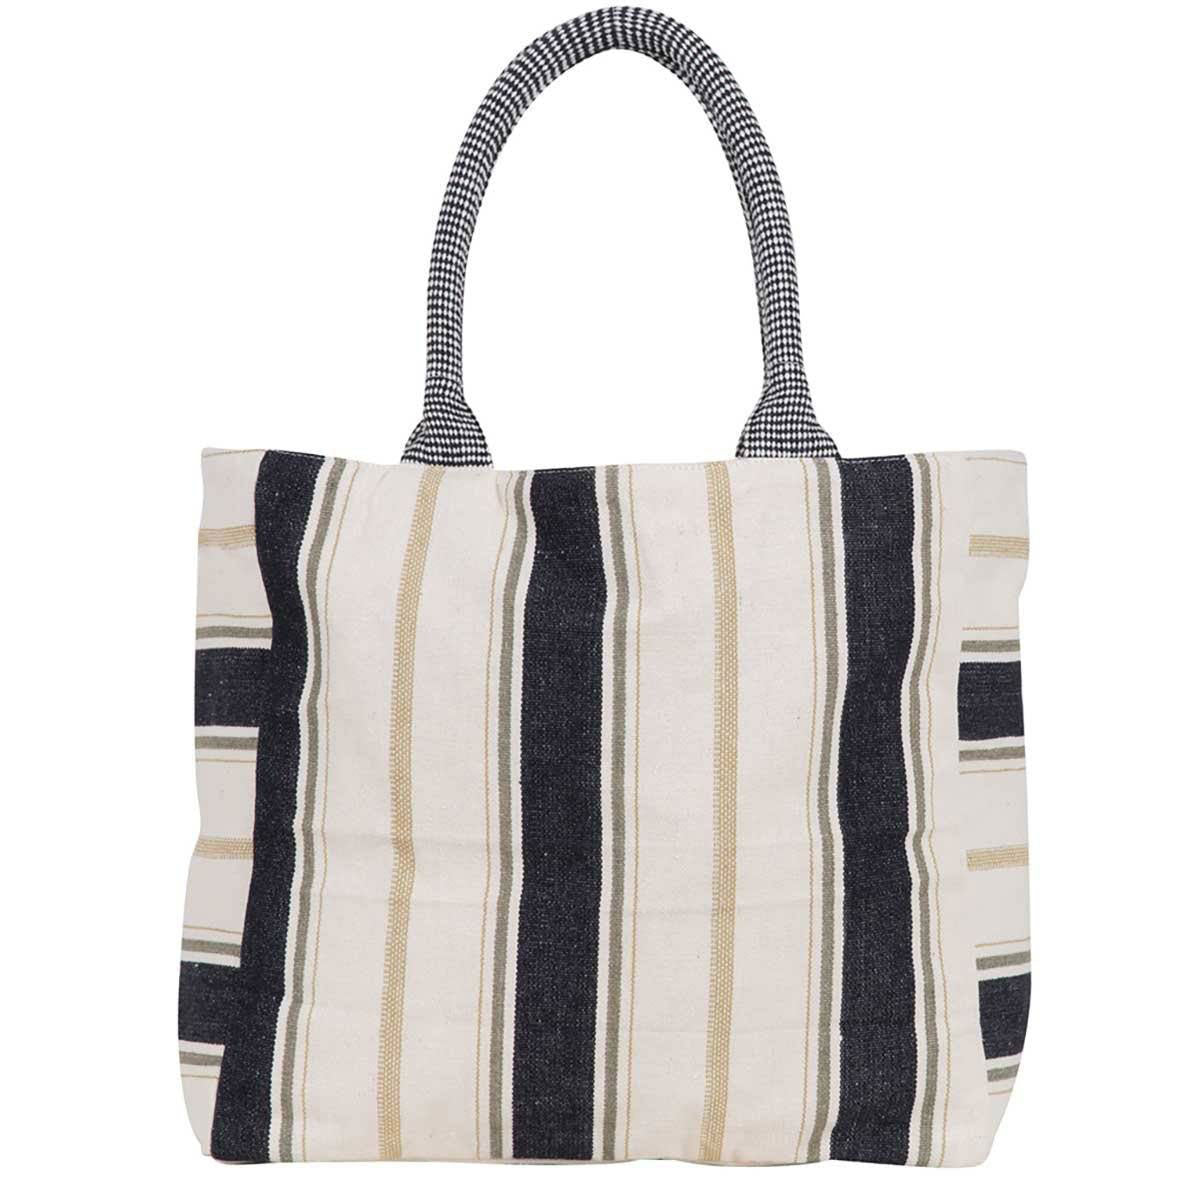 woven cotton striped tote in black, tan, and natural stripes, inspired by the coast